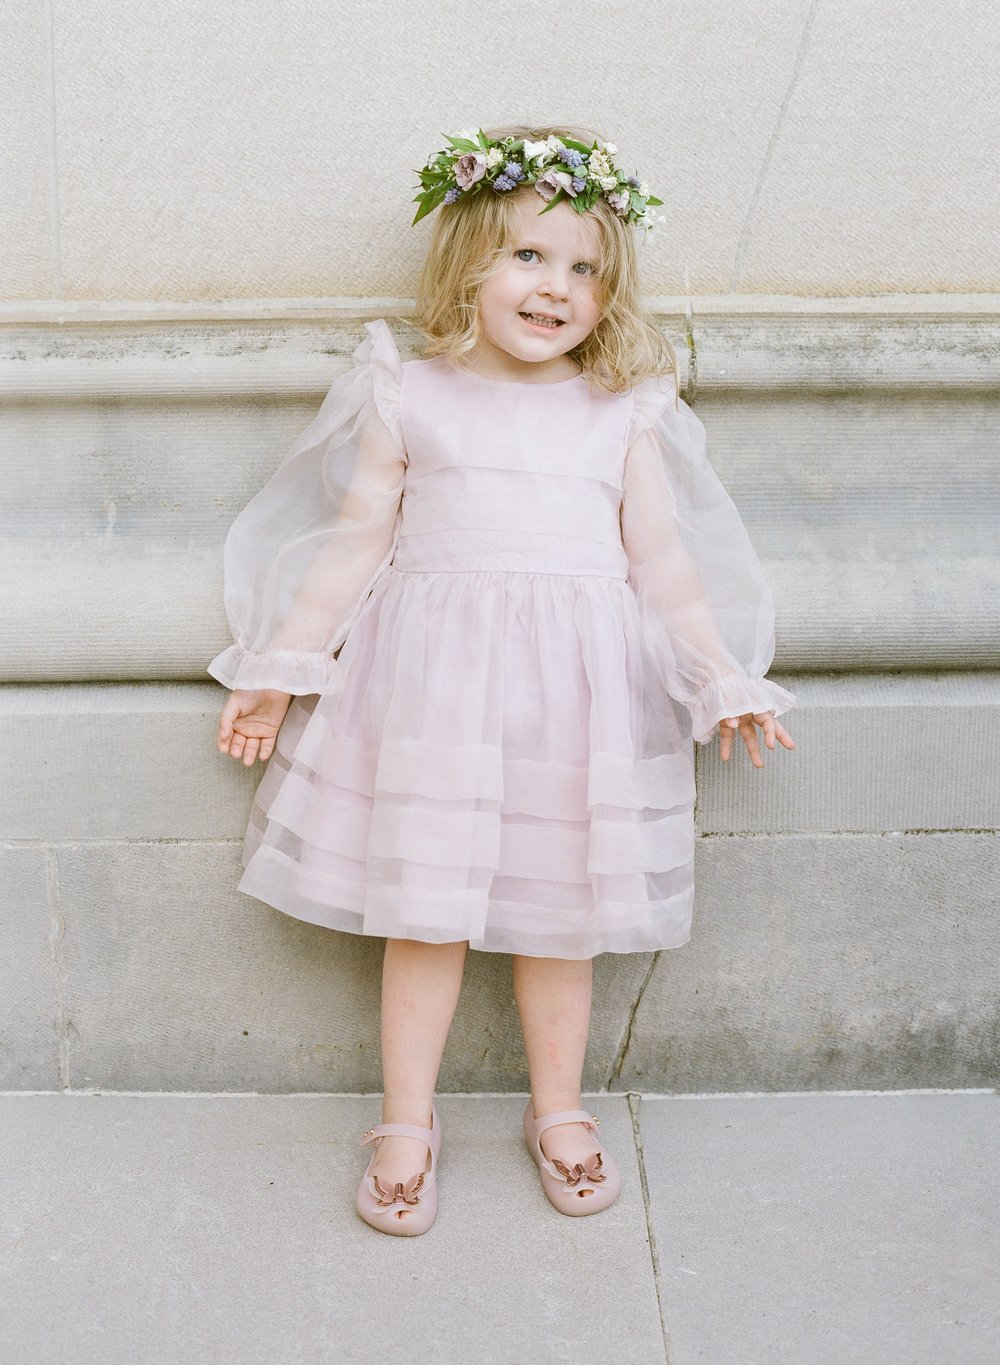 rebecca-clay-wedding-north-carolina-flowergirl-103228802.jpg